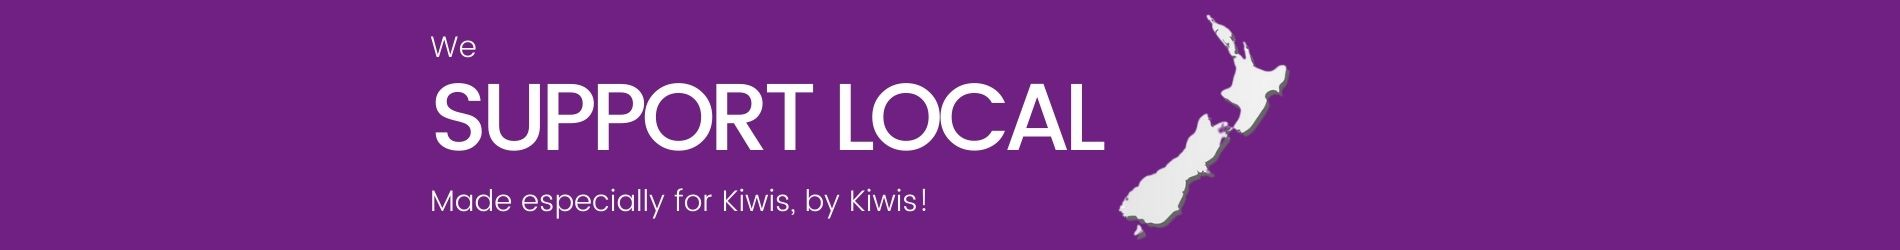 support local nz